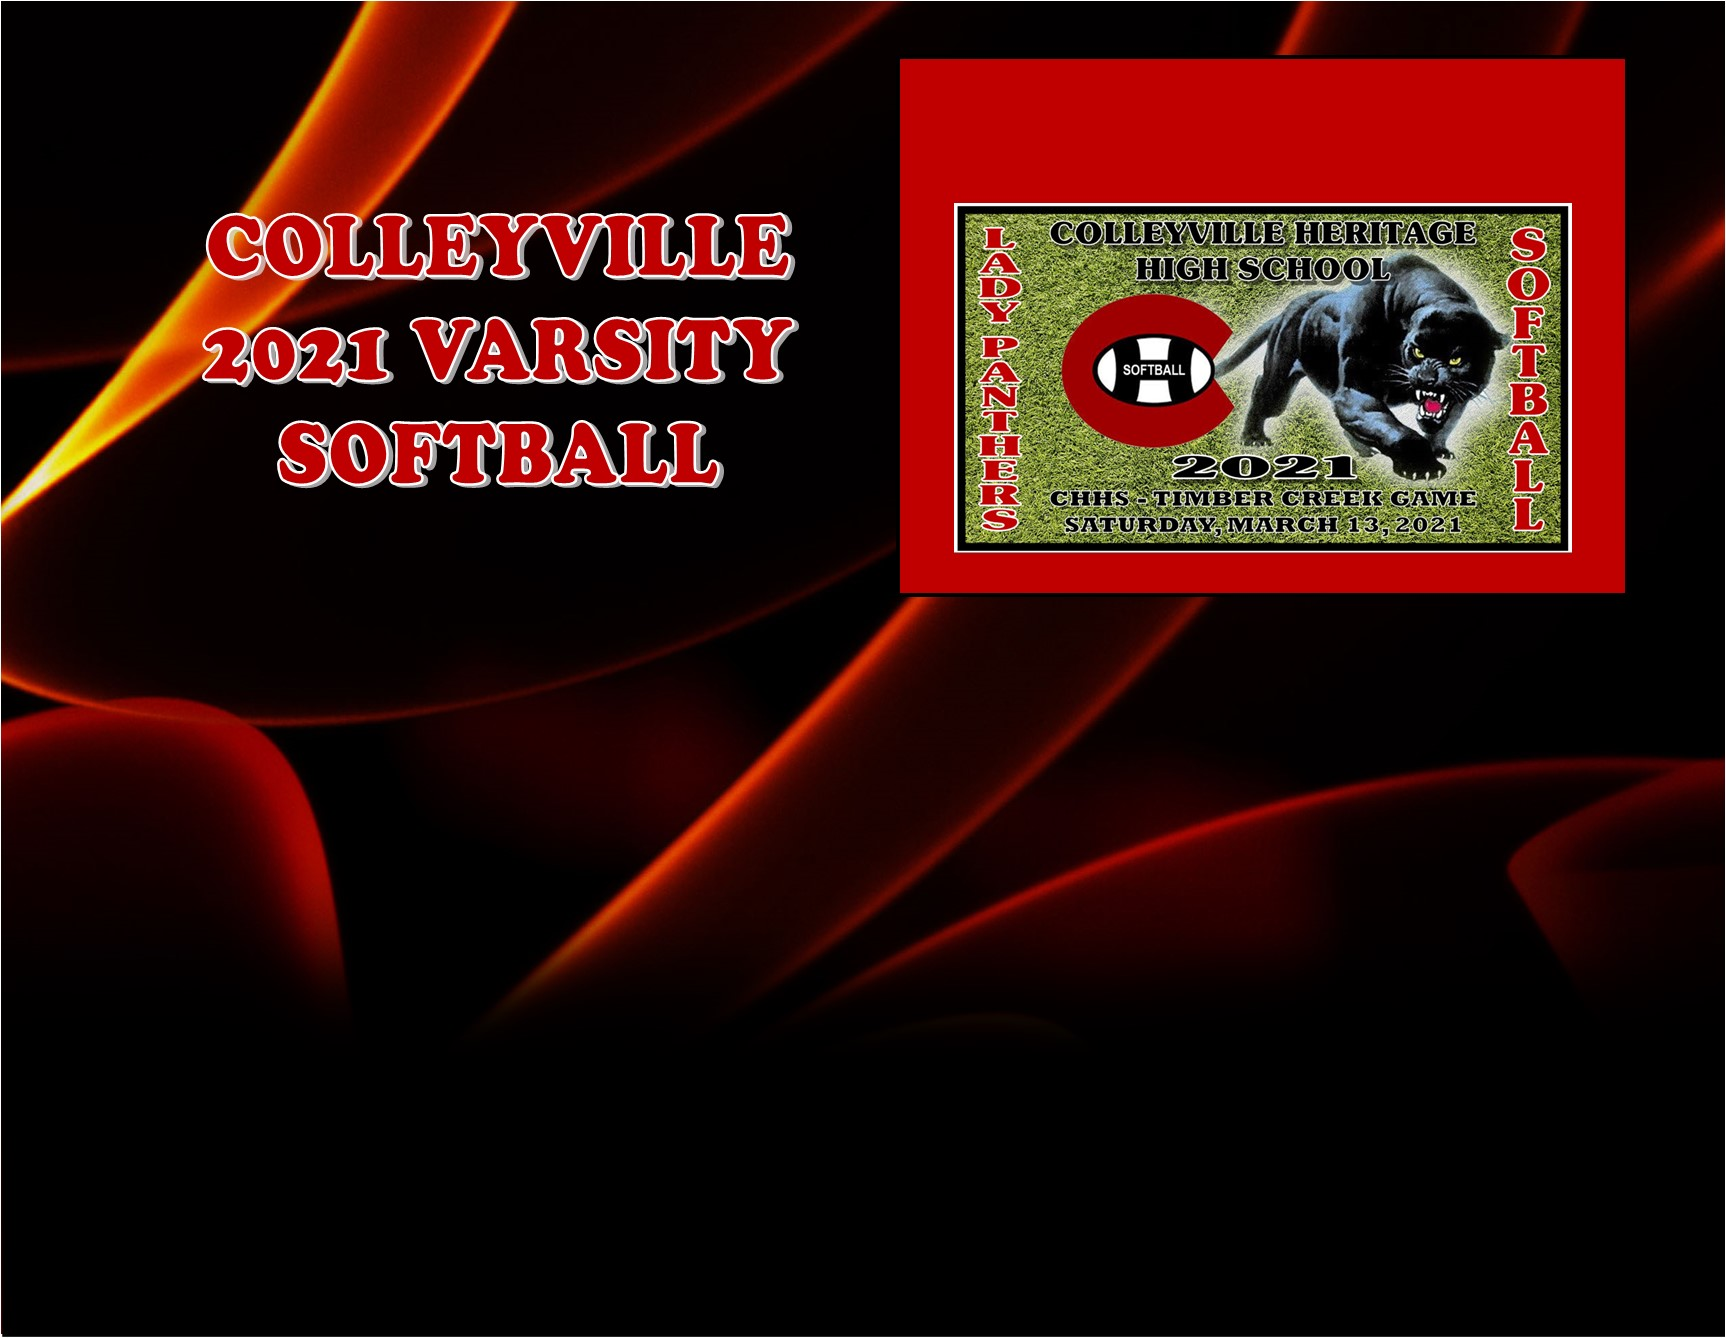 GCISD Softball: Colleyville Panthers Tripped Up by Timber Creek Falcons 5-1